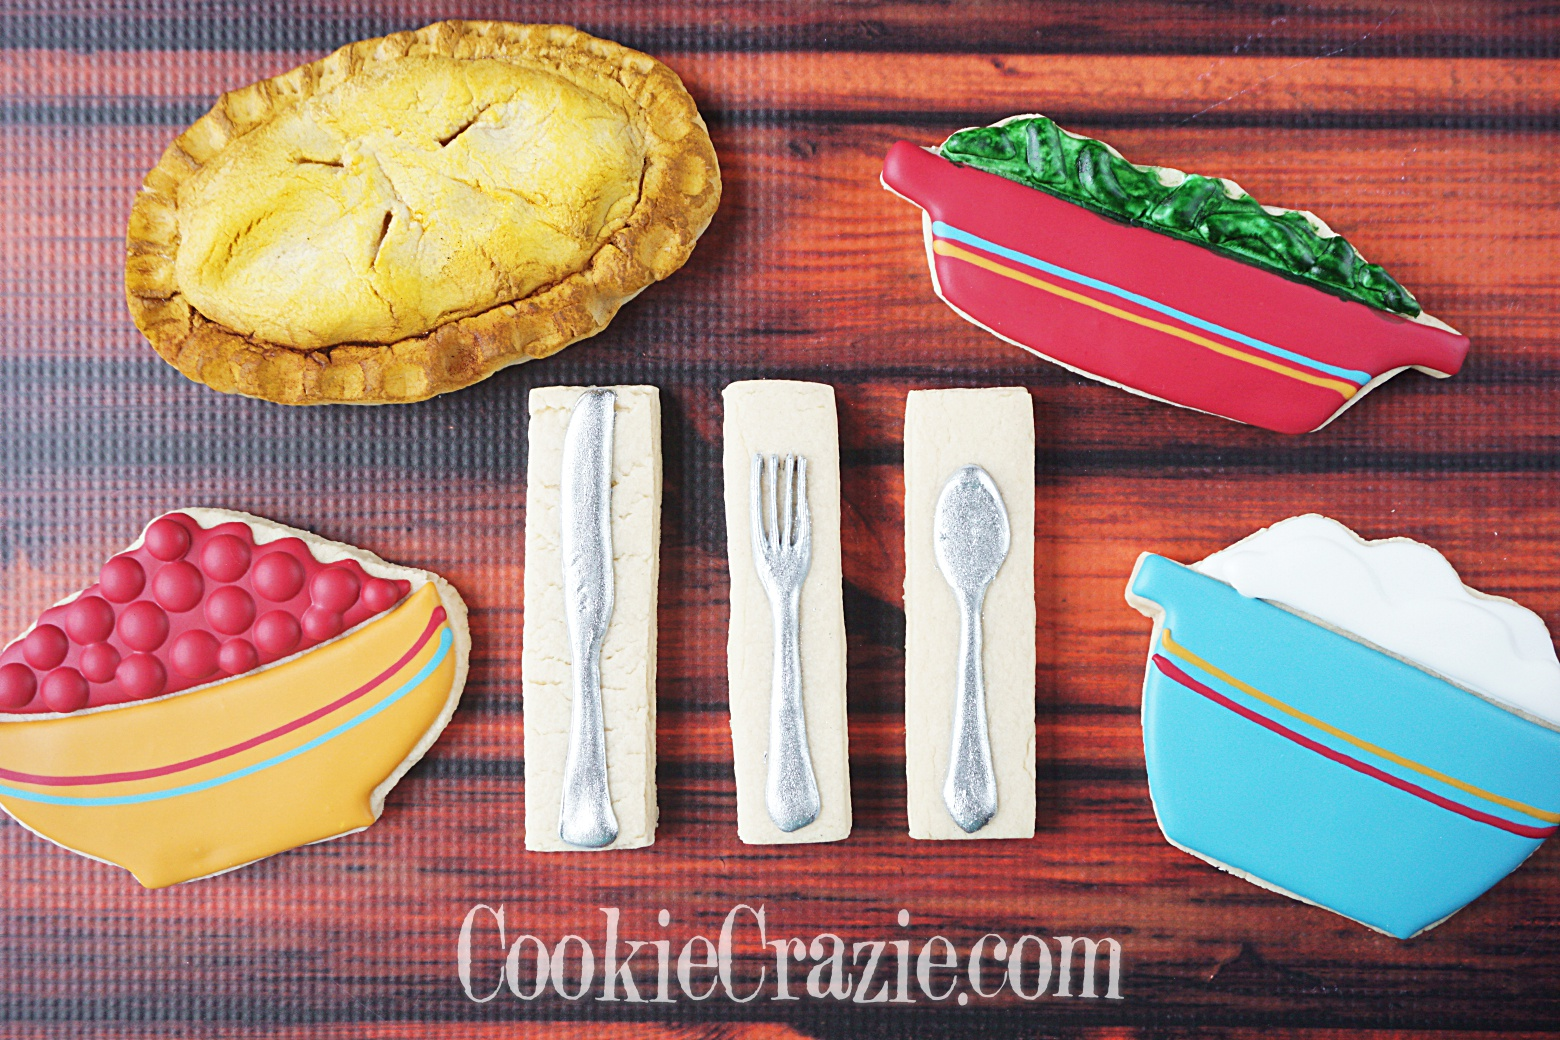 Silverware (Fork, Knife, & Spoon) Decorated Sugar Cookies YouTube video  HERE